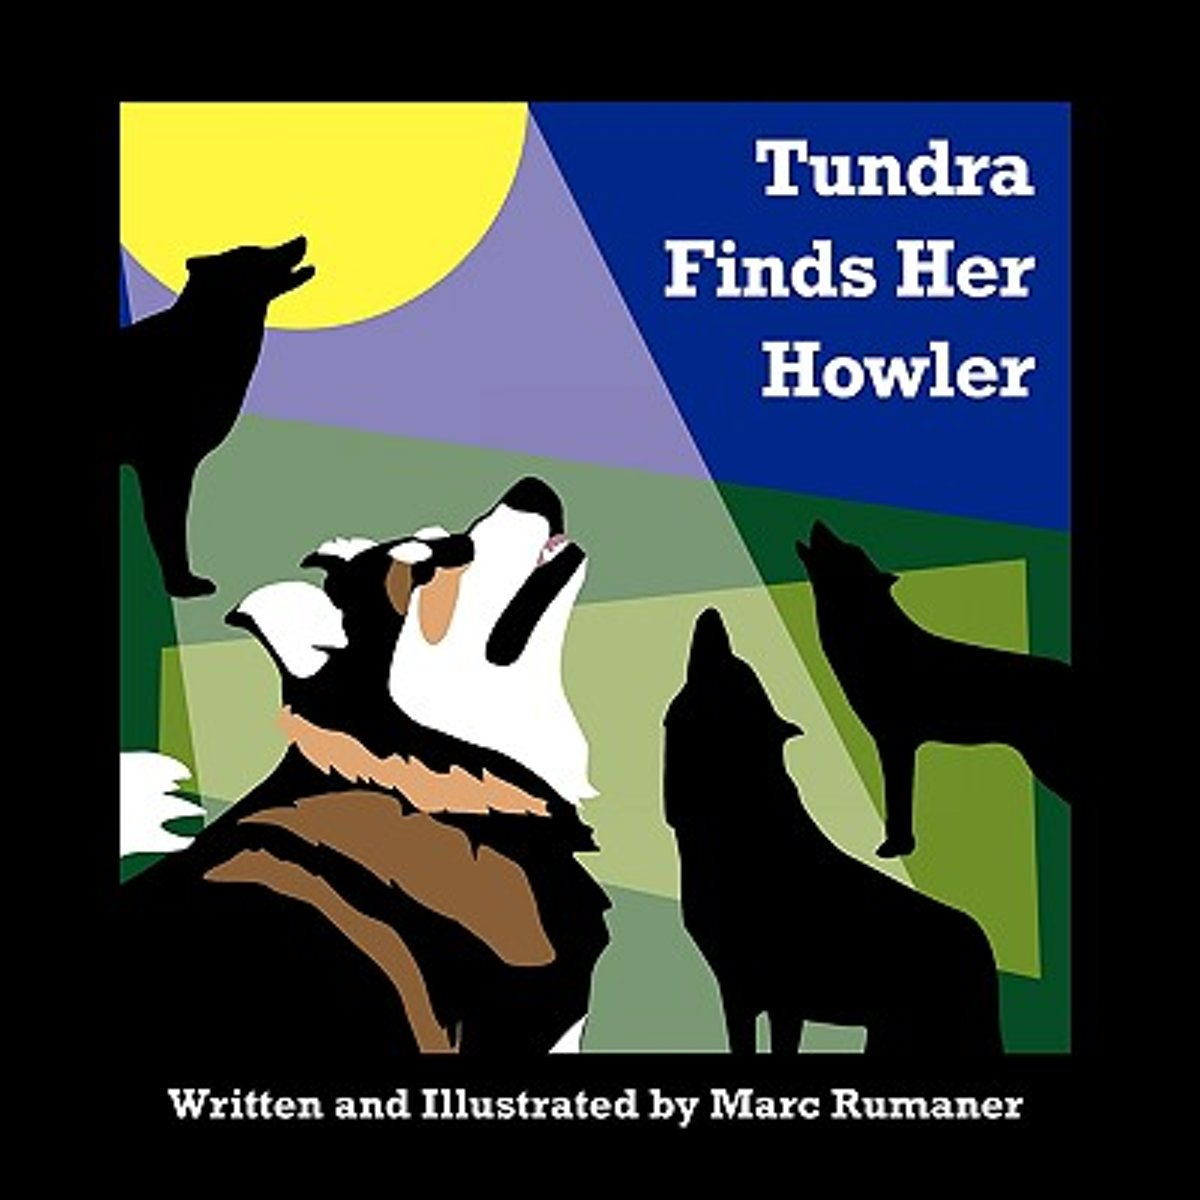 Tundra Finds Her Howler